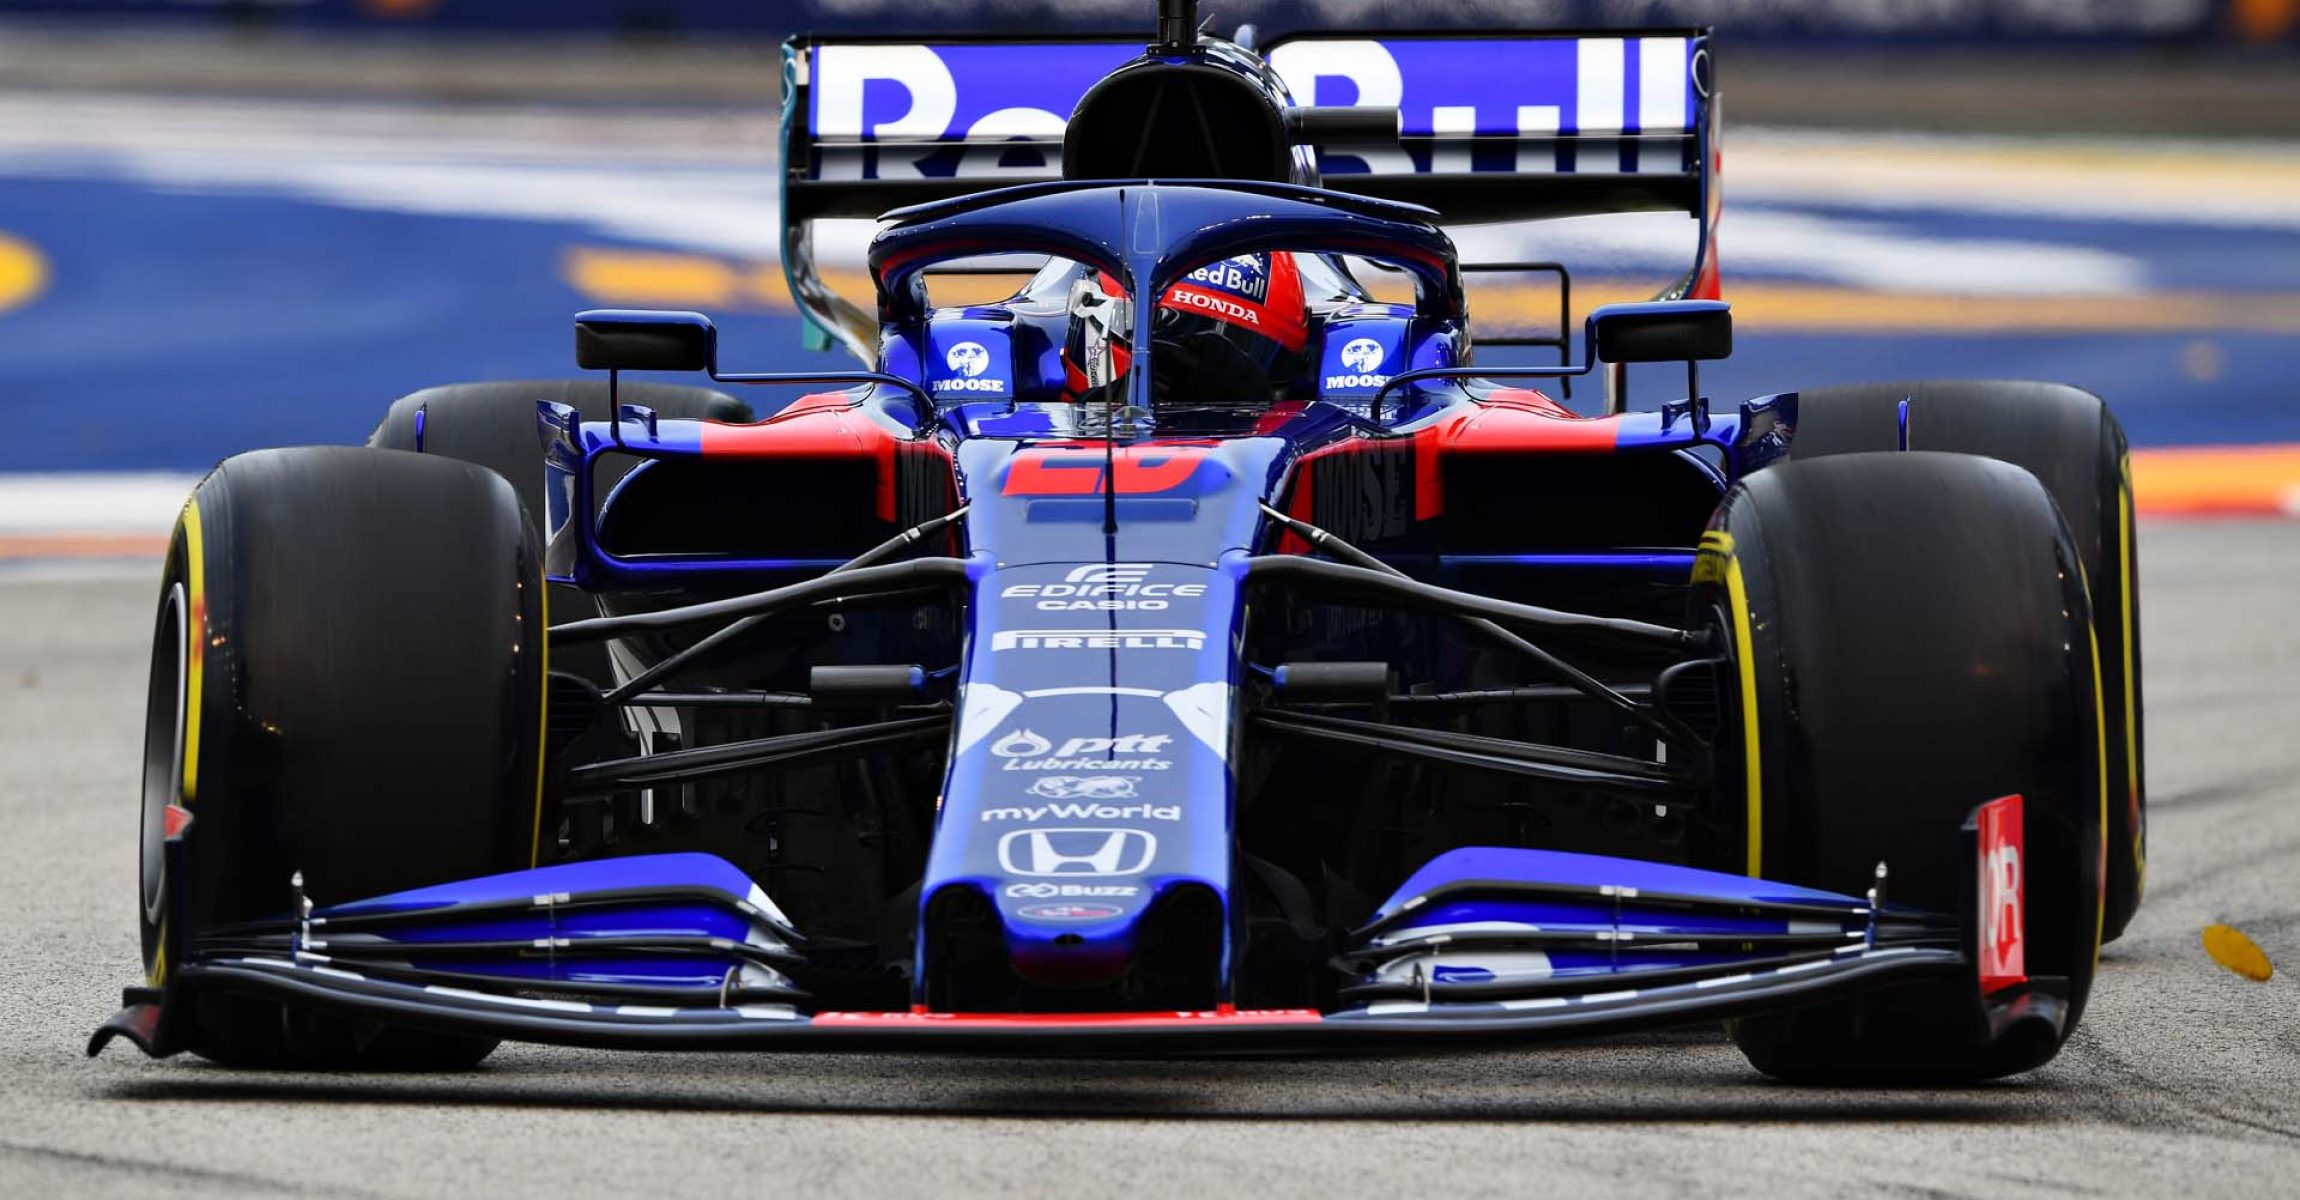 SINGAPORE, SINGAPORE - SEPTEMBER 20: Daniil Kvyat driving the (26) Scuderia Toro Rosso STR14 Honda on track during practice for the F1 Grand Prix of Singapore at Marina Bay Street Circuit on September 20, 2019 in Singapore. (Photo by Clive Mason/Getty Images) // Getty Images / Red Bull Content Pool  // AP-21MKMKSBW2111 // Usage for editorial use only //